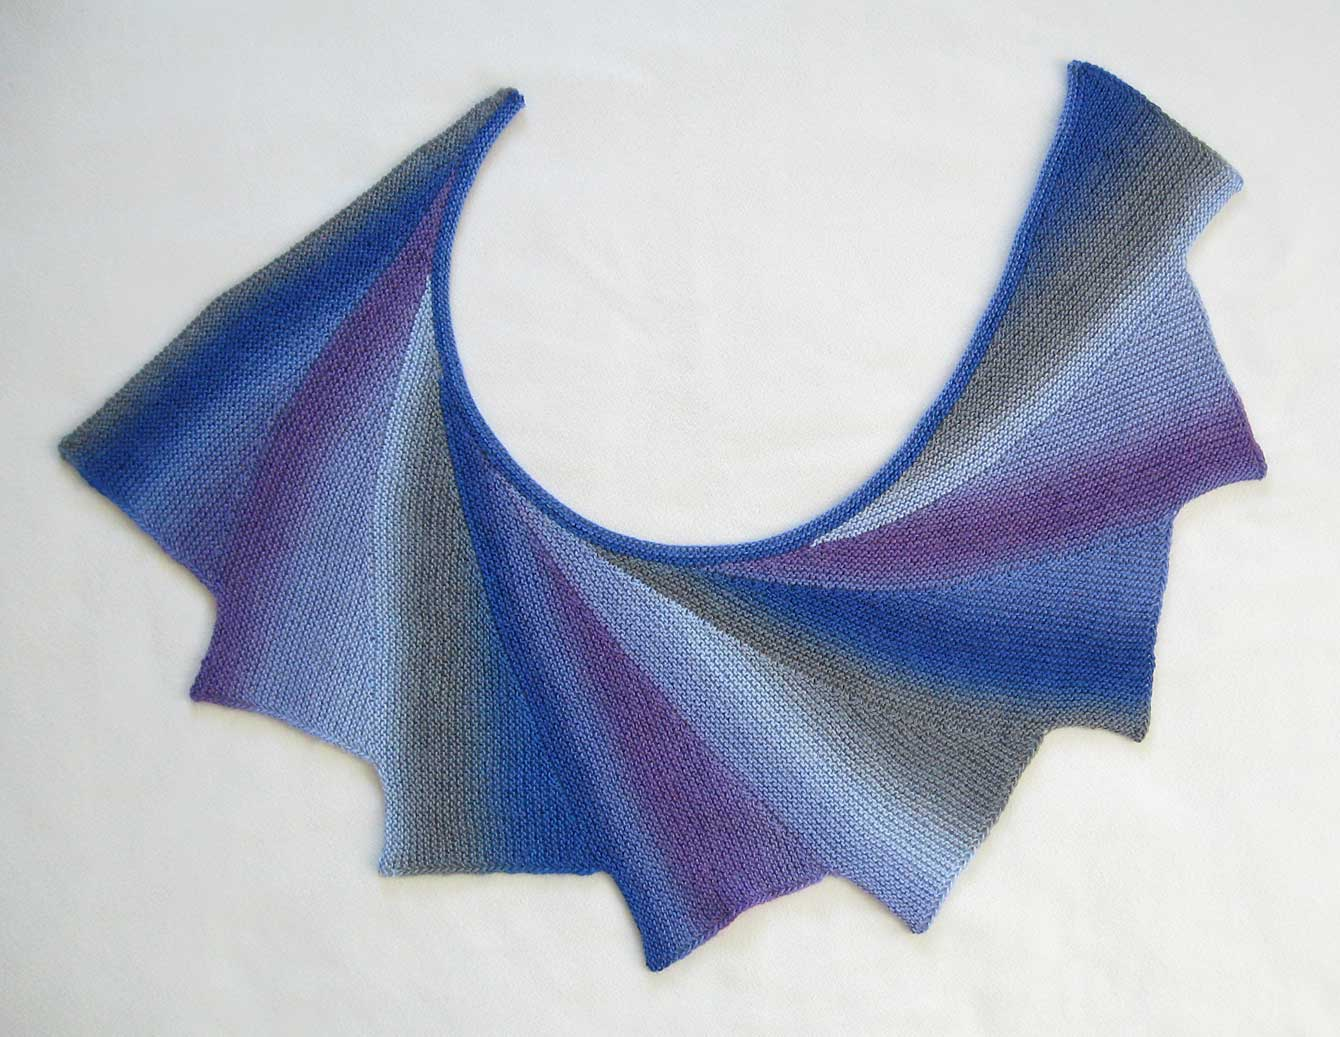 Knitted Pattern For Wingspan Scarf : Intrigued by the popular Silver Threads